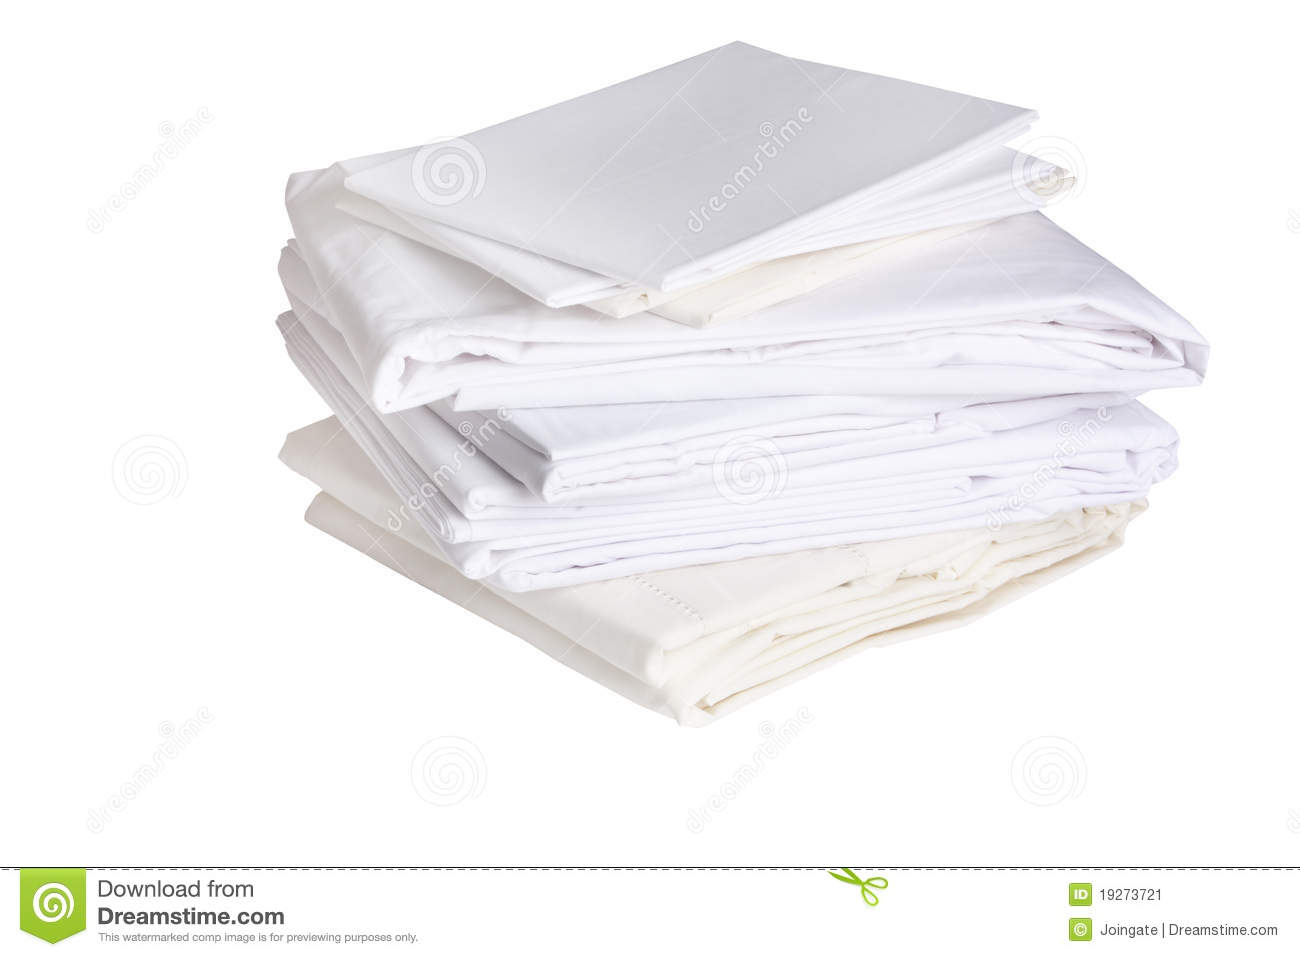 Pile Of Ironed White Bed Sheets Stock Image - Image: 19273721